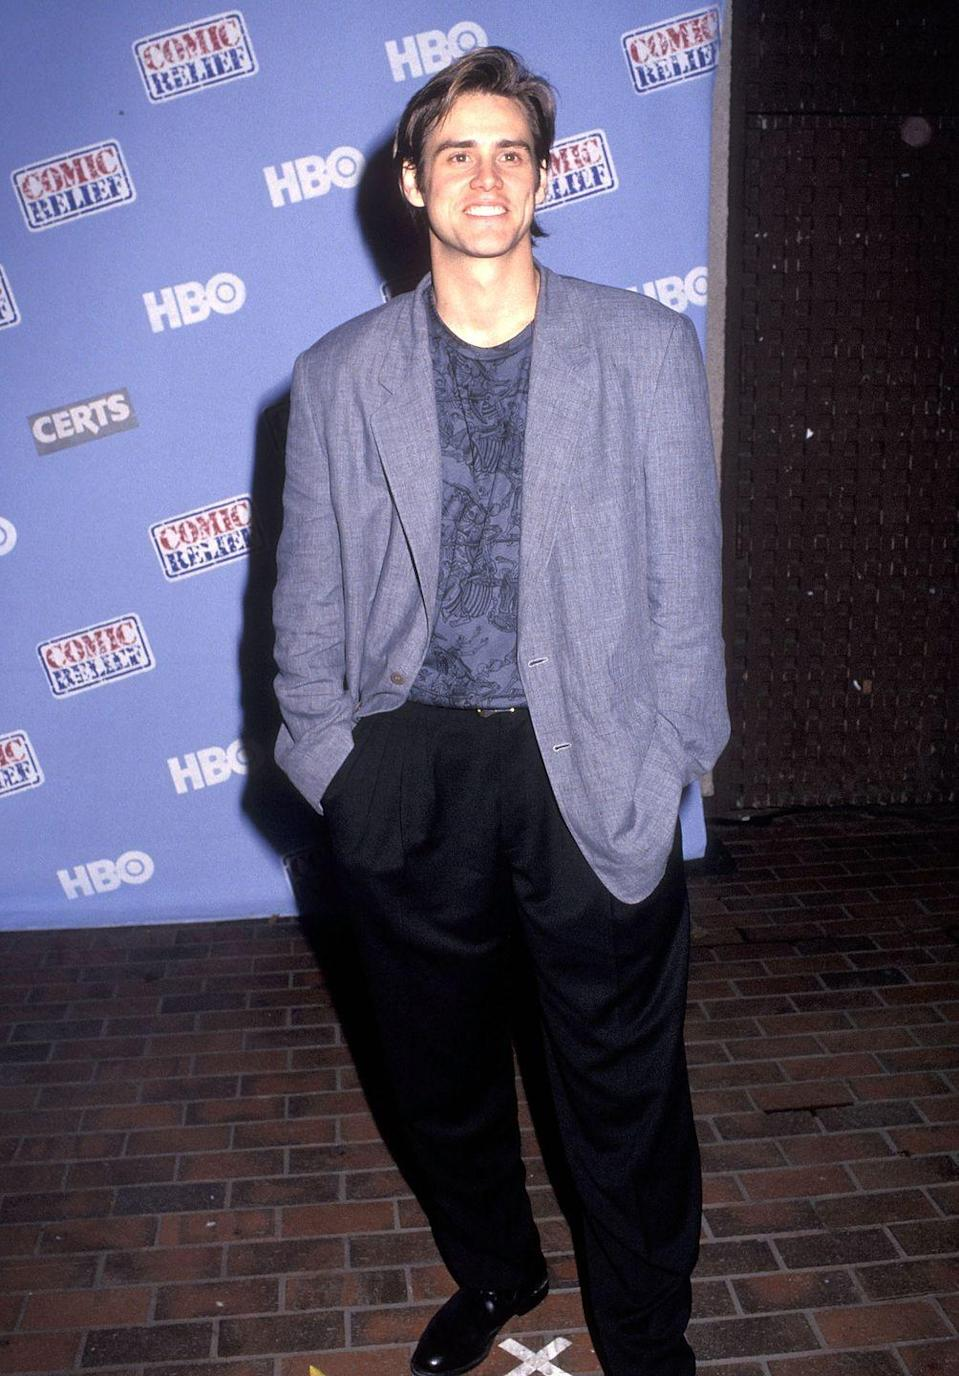 <p>In the early '90s, Jim Carrey started off as a stand-up comedian, and his acting career took off in the mid-90s. With films like <em>Dumb and Dumber, Ace Ventura</em>, and <em>The Mask</em>, as well as many others, Carrey was known as one of the funniest actors of the decade. </p>